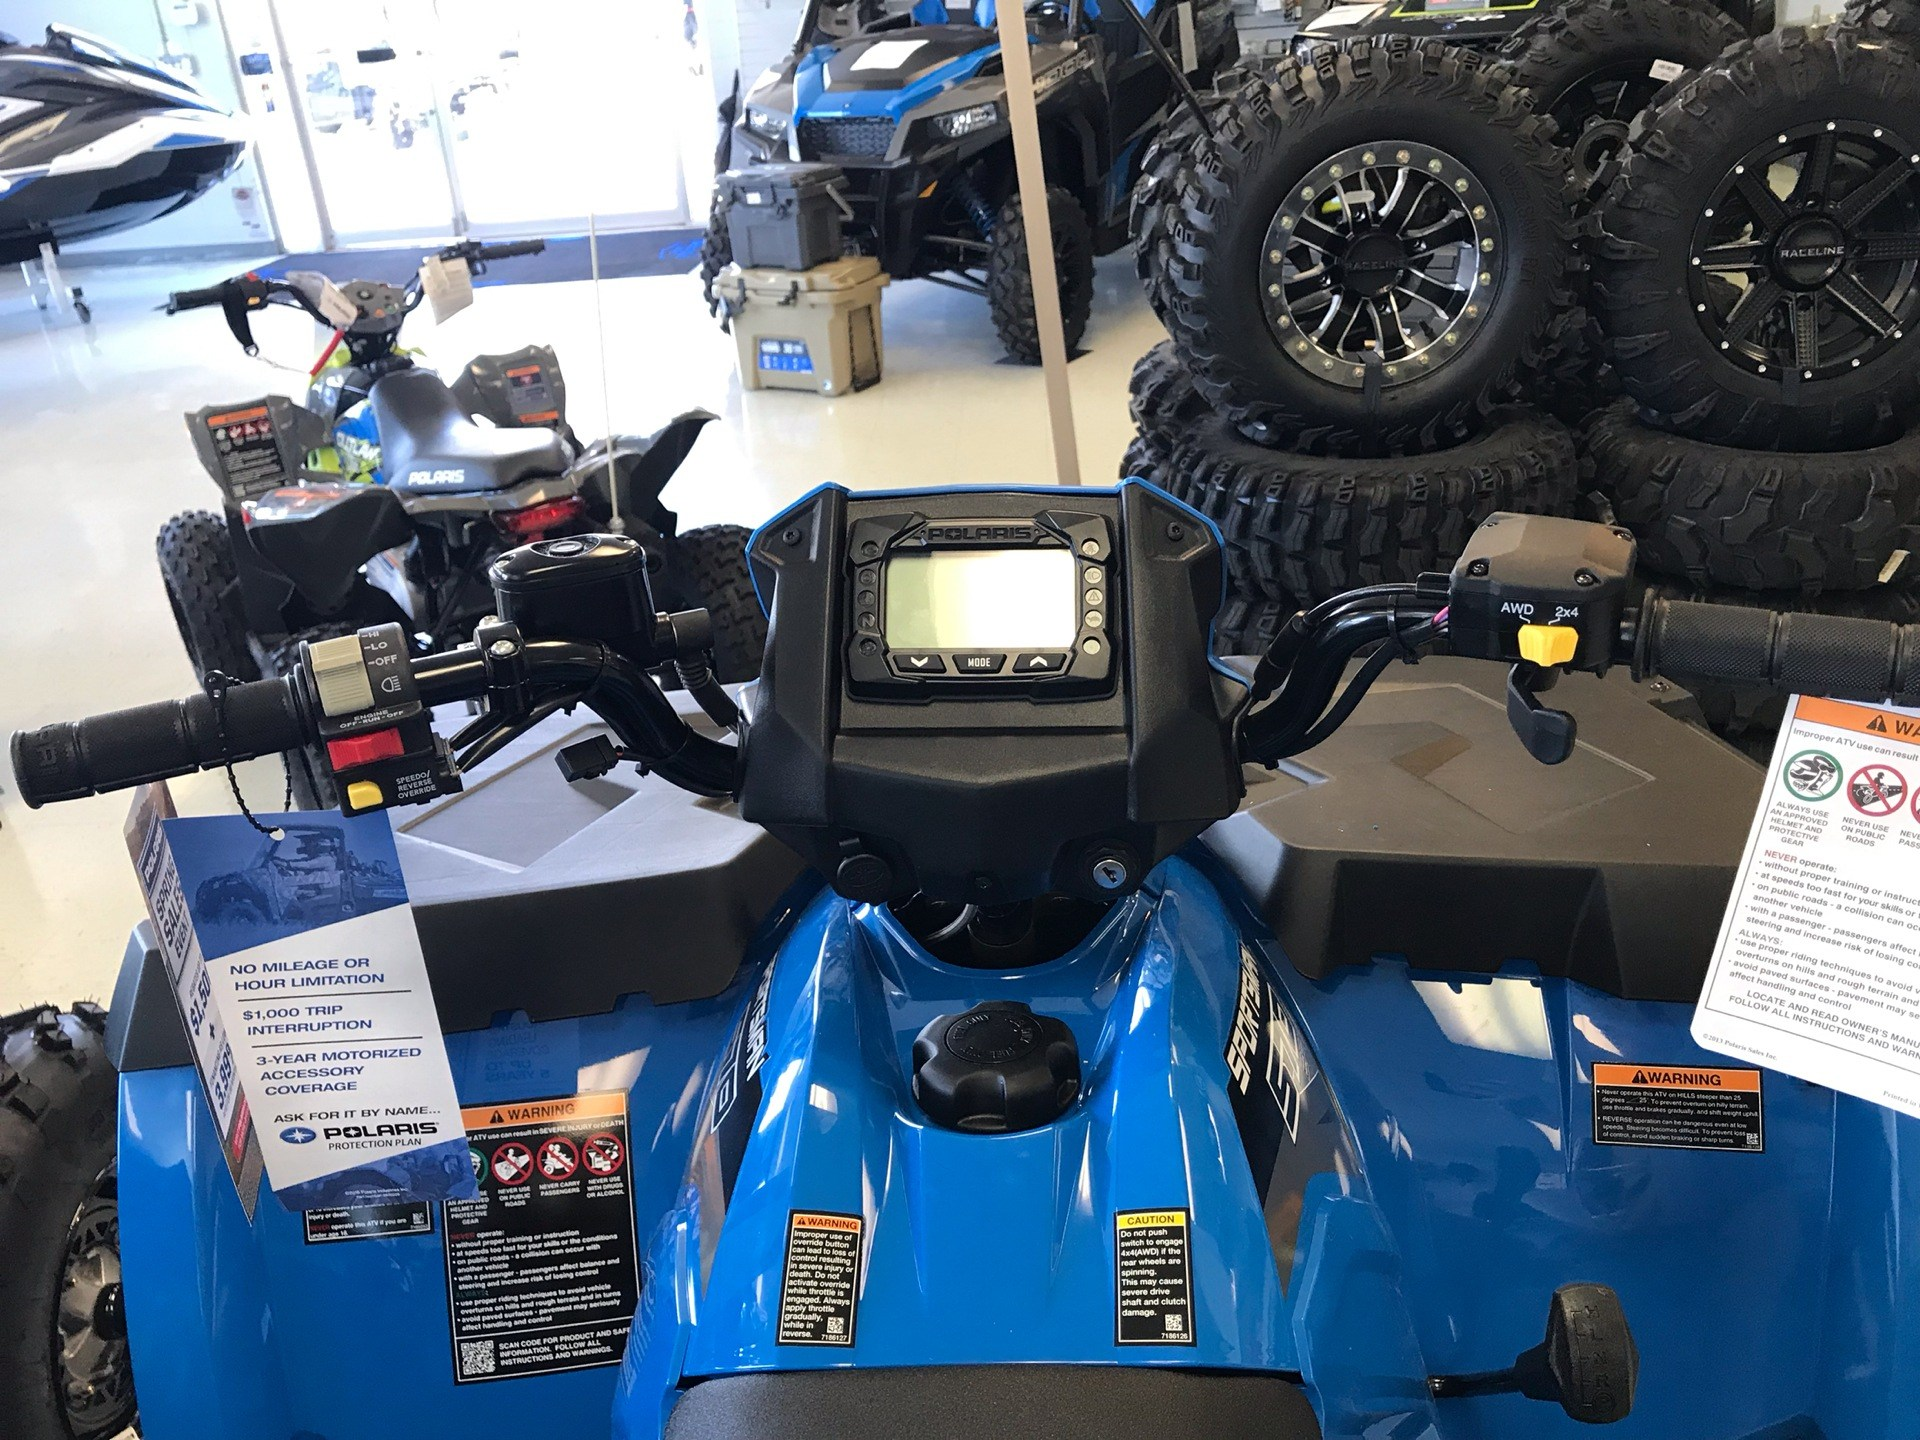 2019 Polaris Sportsman 570 EPS in Forest, Virginia - Photo 5